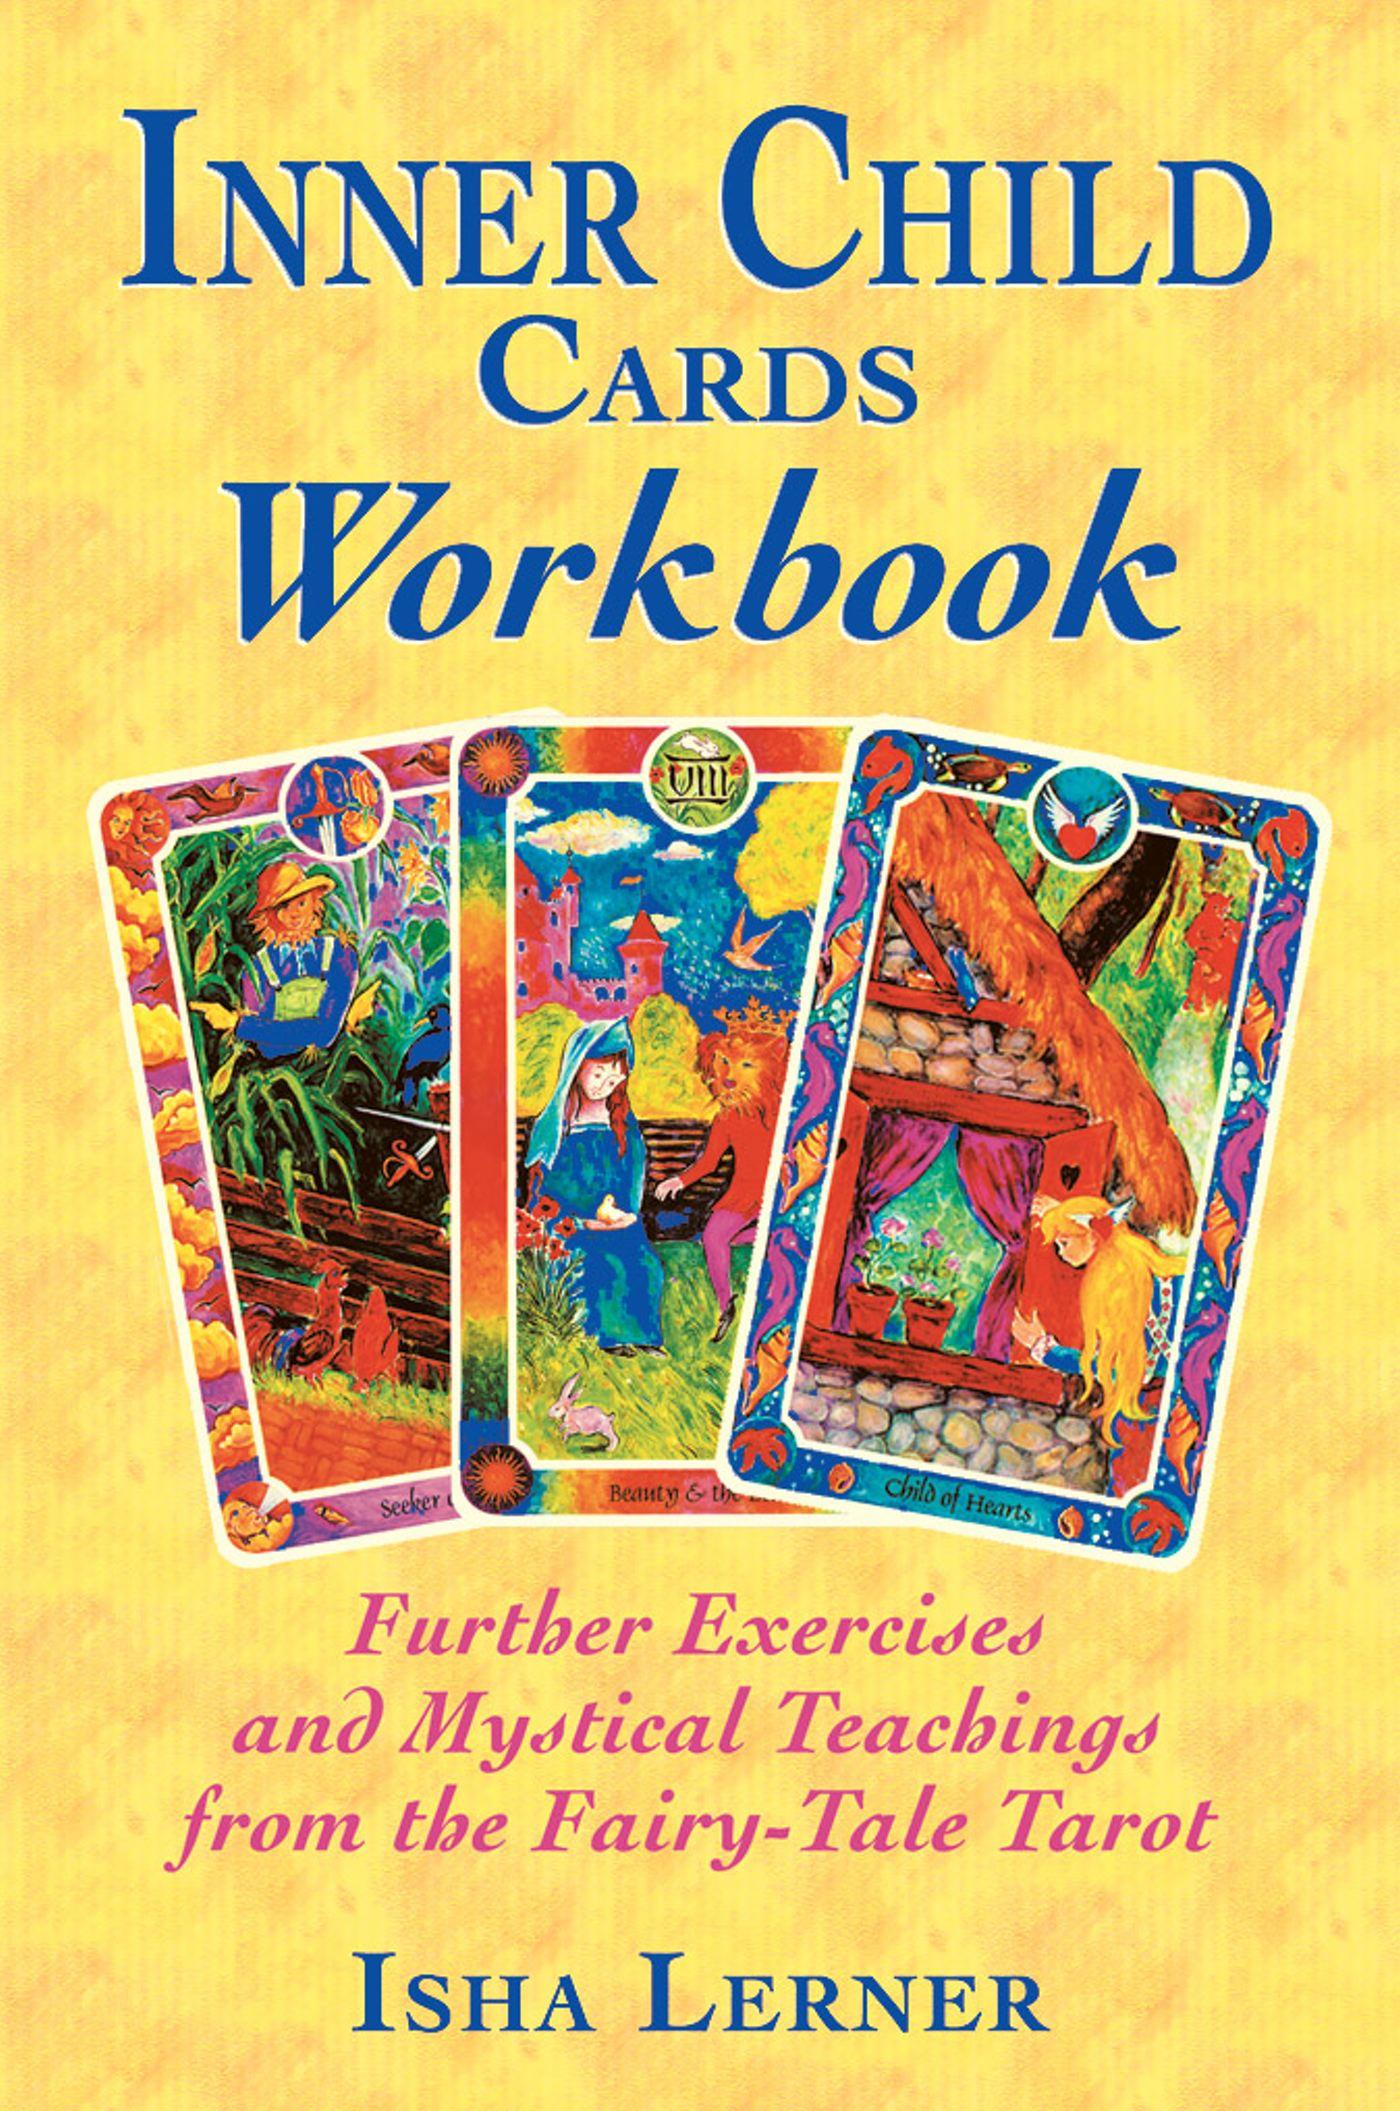 Inner child cards workbook 9781879181892 hr